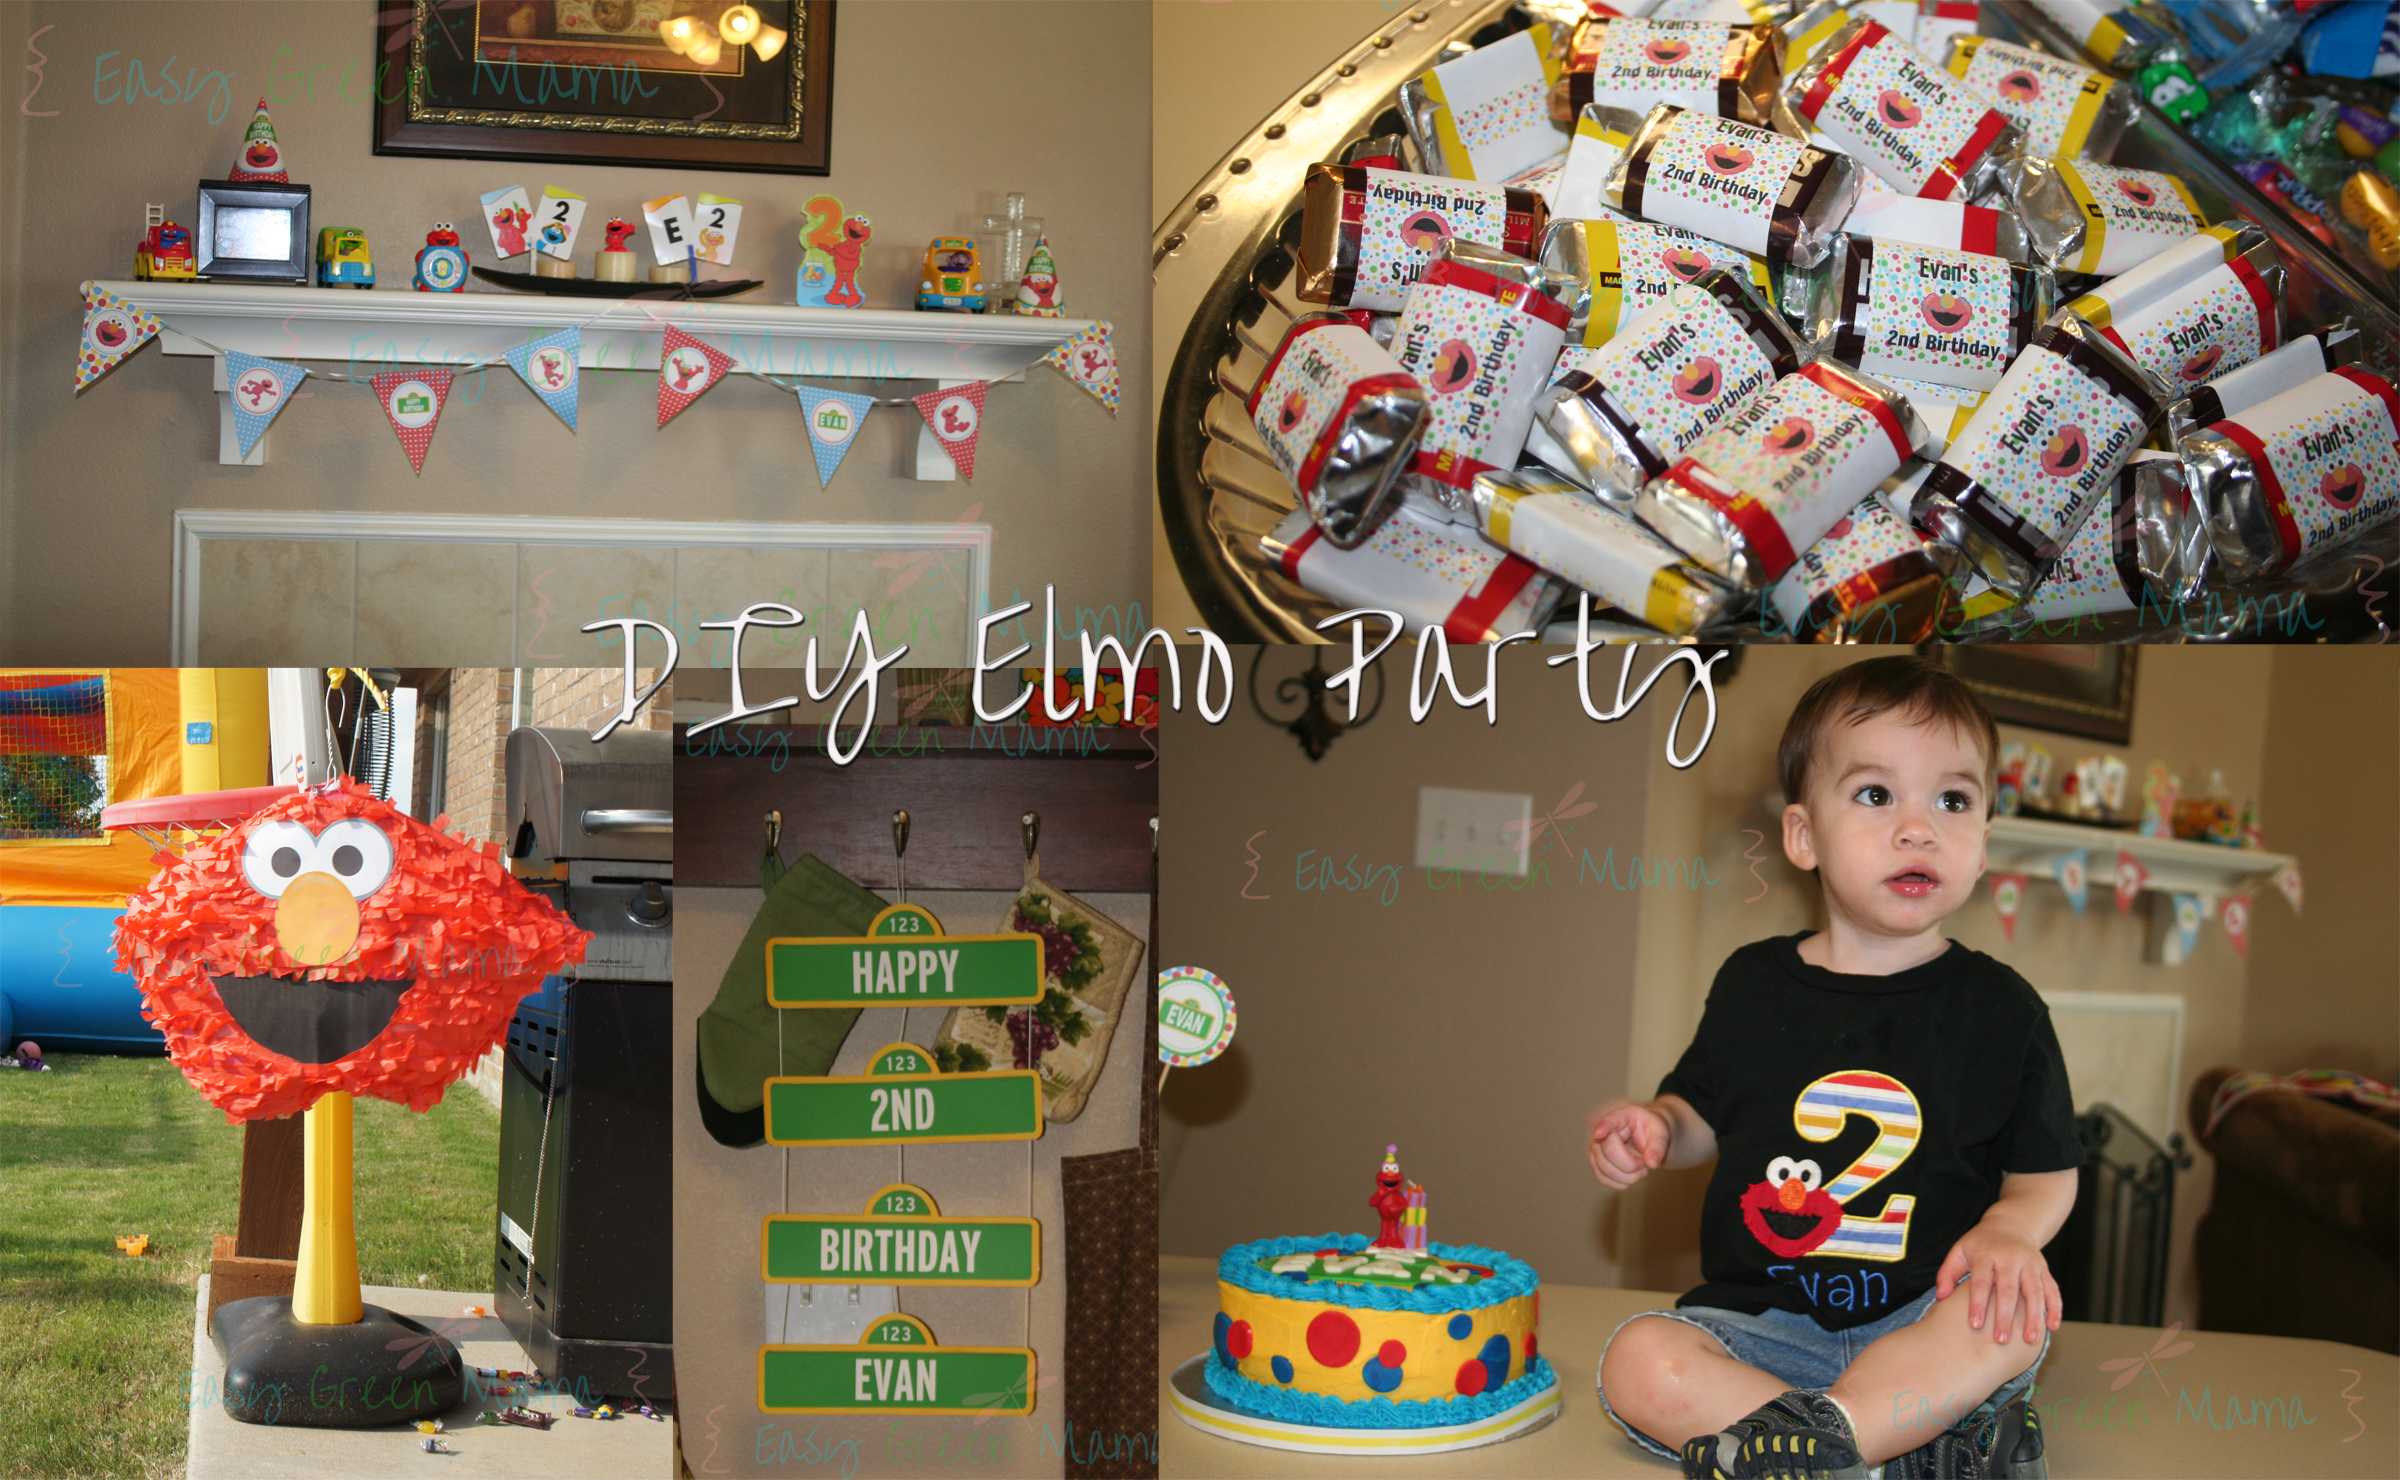 Amazing Diy Elmo Party Ideas With Free Printables From Rays Of Bliss Funny Birthday Cards Online Bapapcheapnameinfo